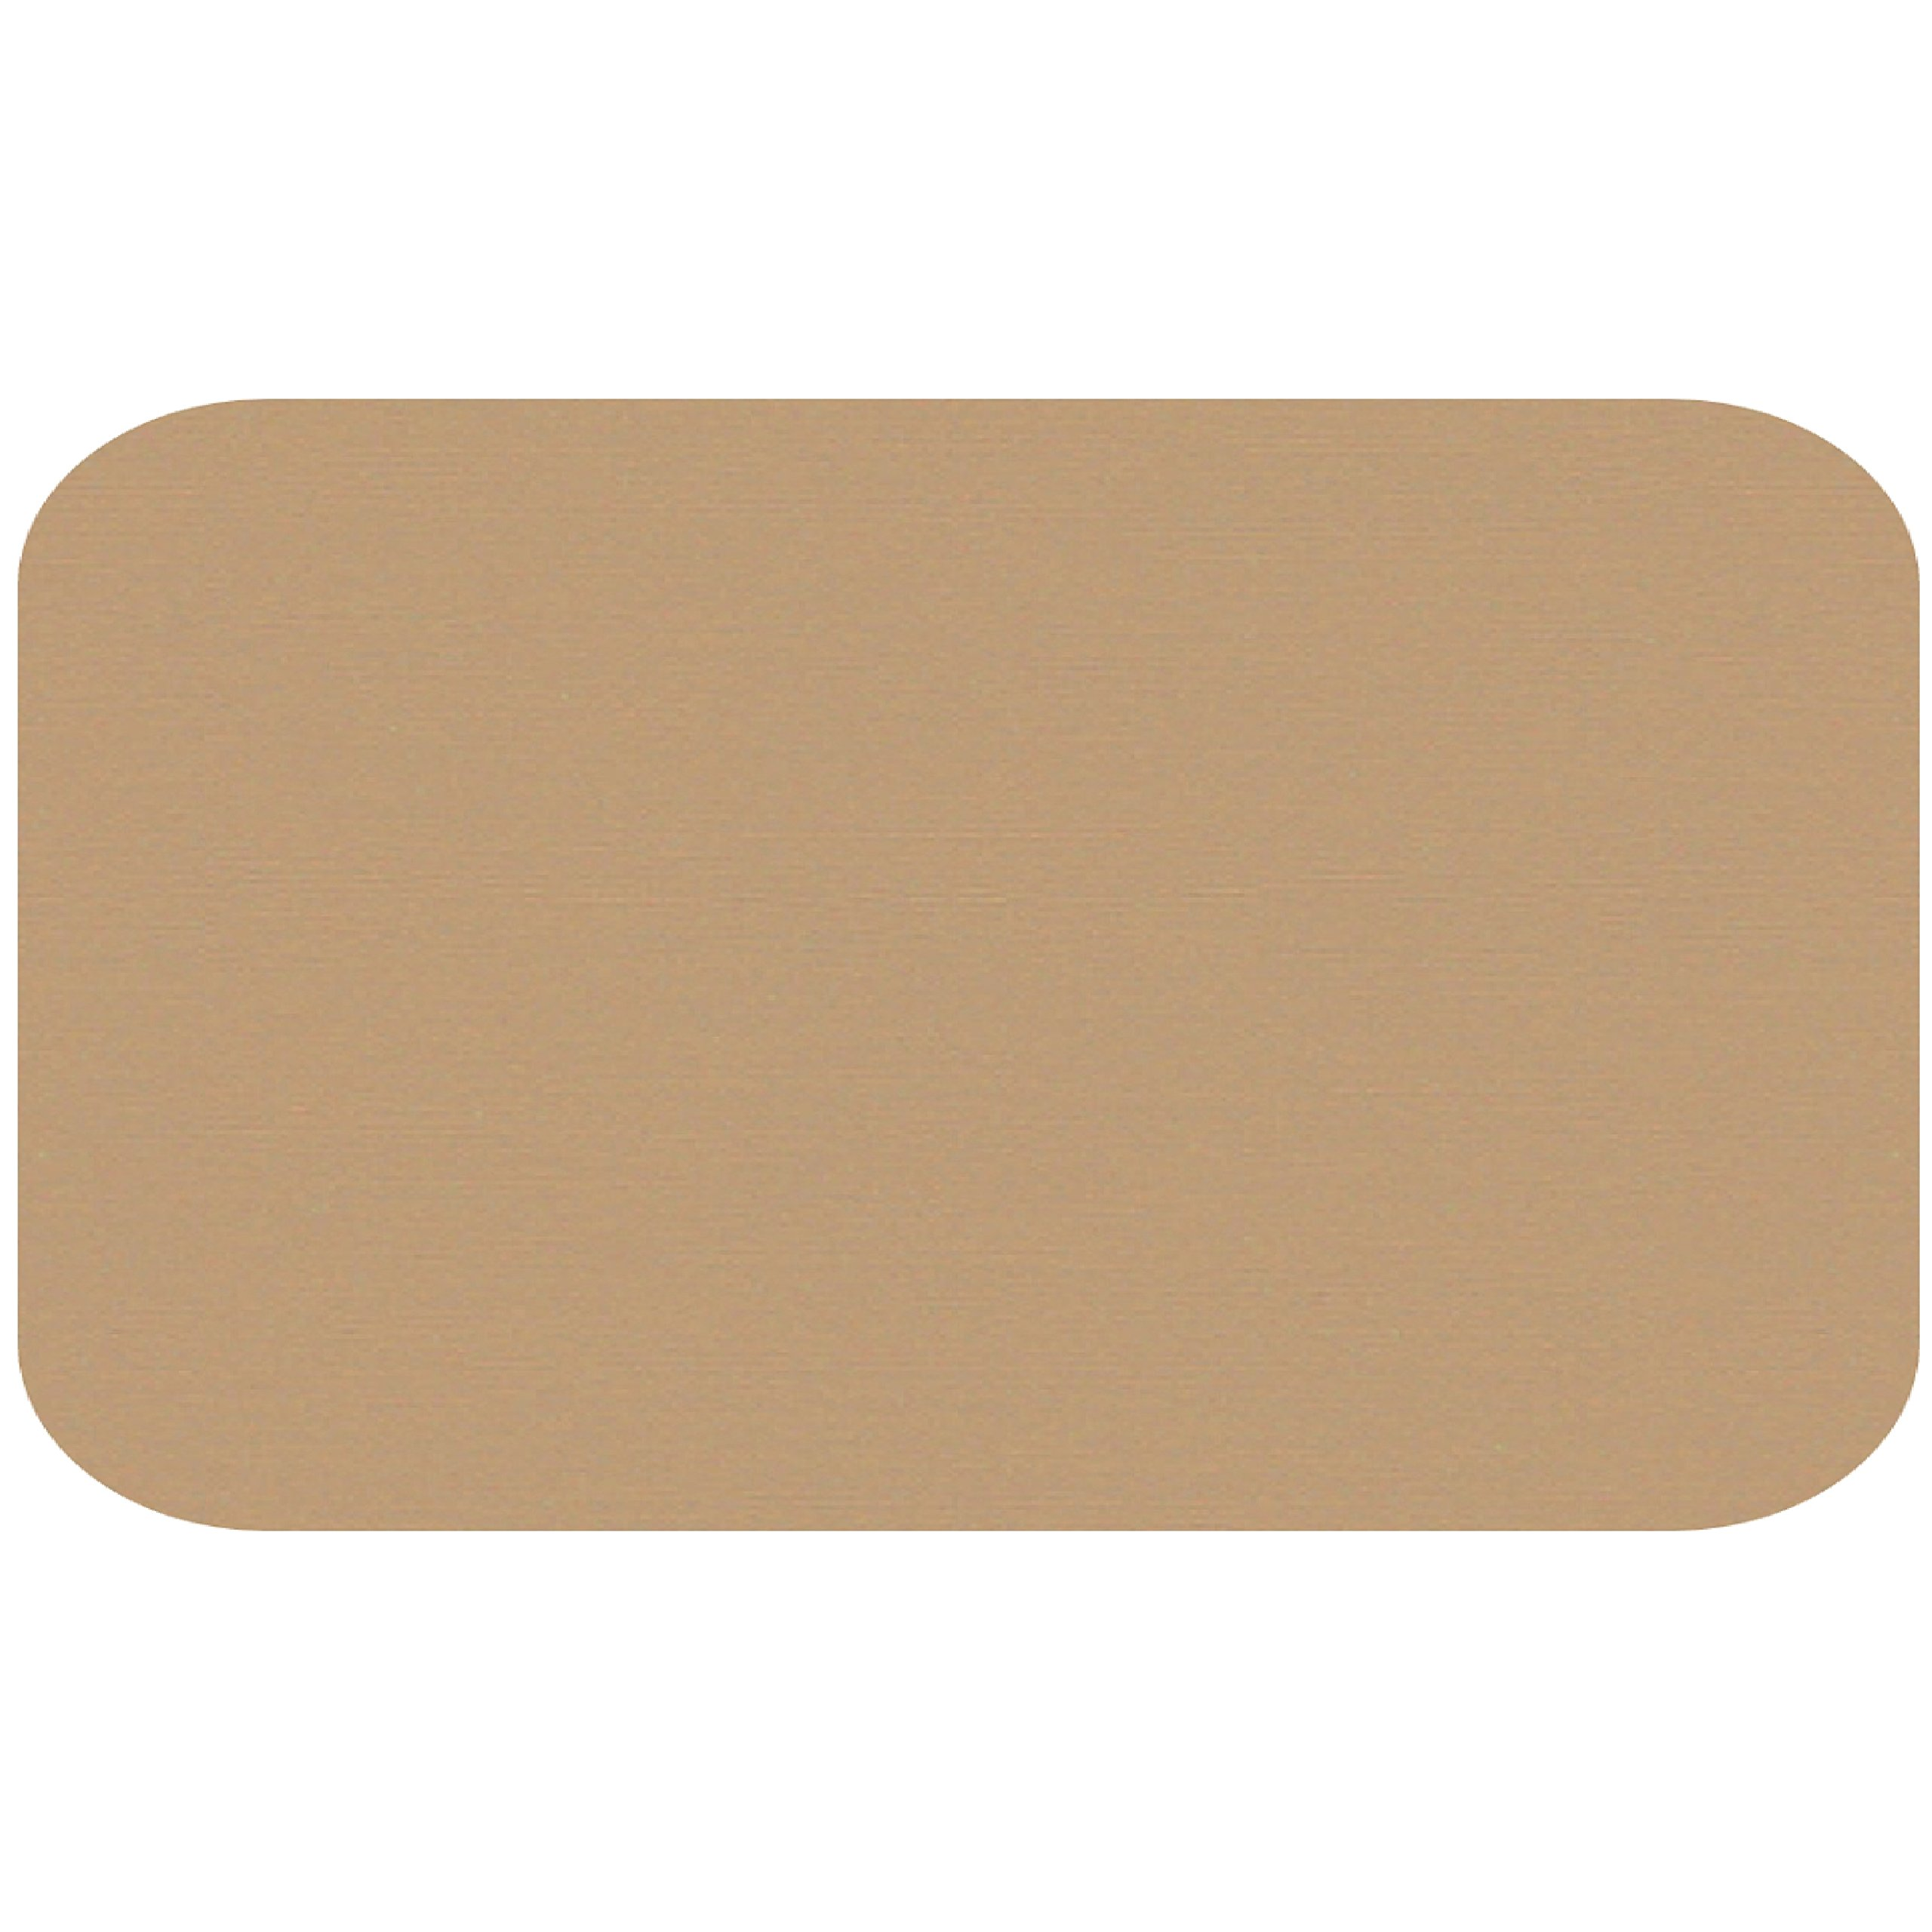 Colonial Cards: 150 Color Cardstock 3'' x 5'' Index Cards, Kraft, Unruled with Rounded Corners